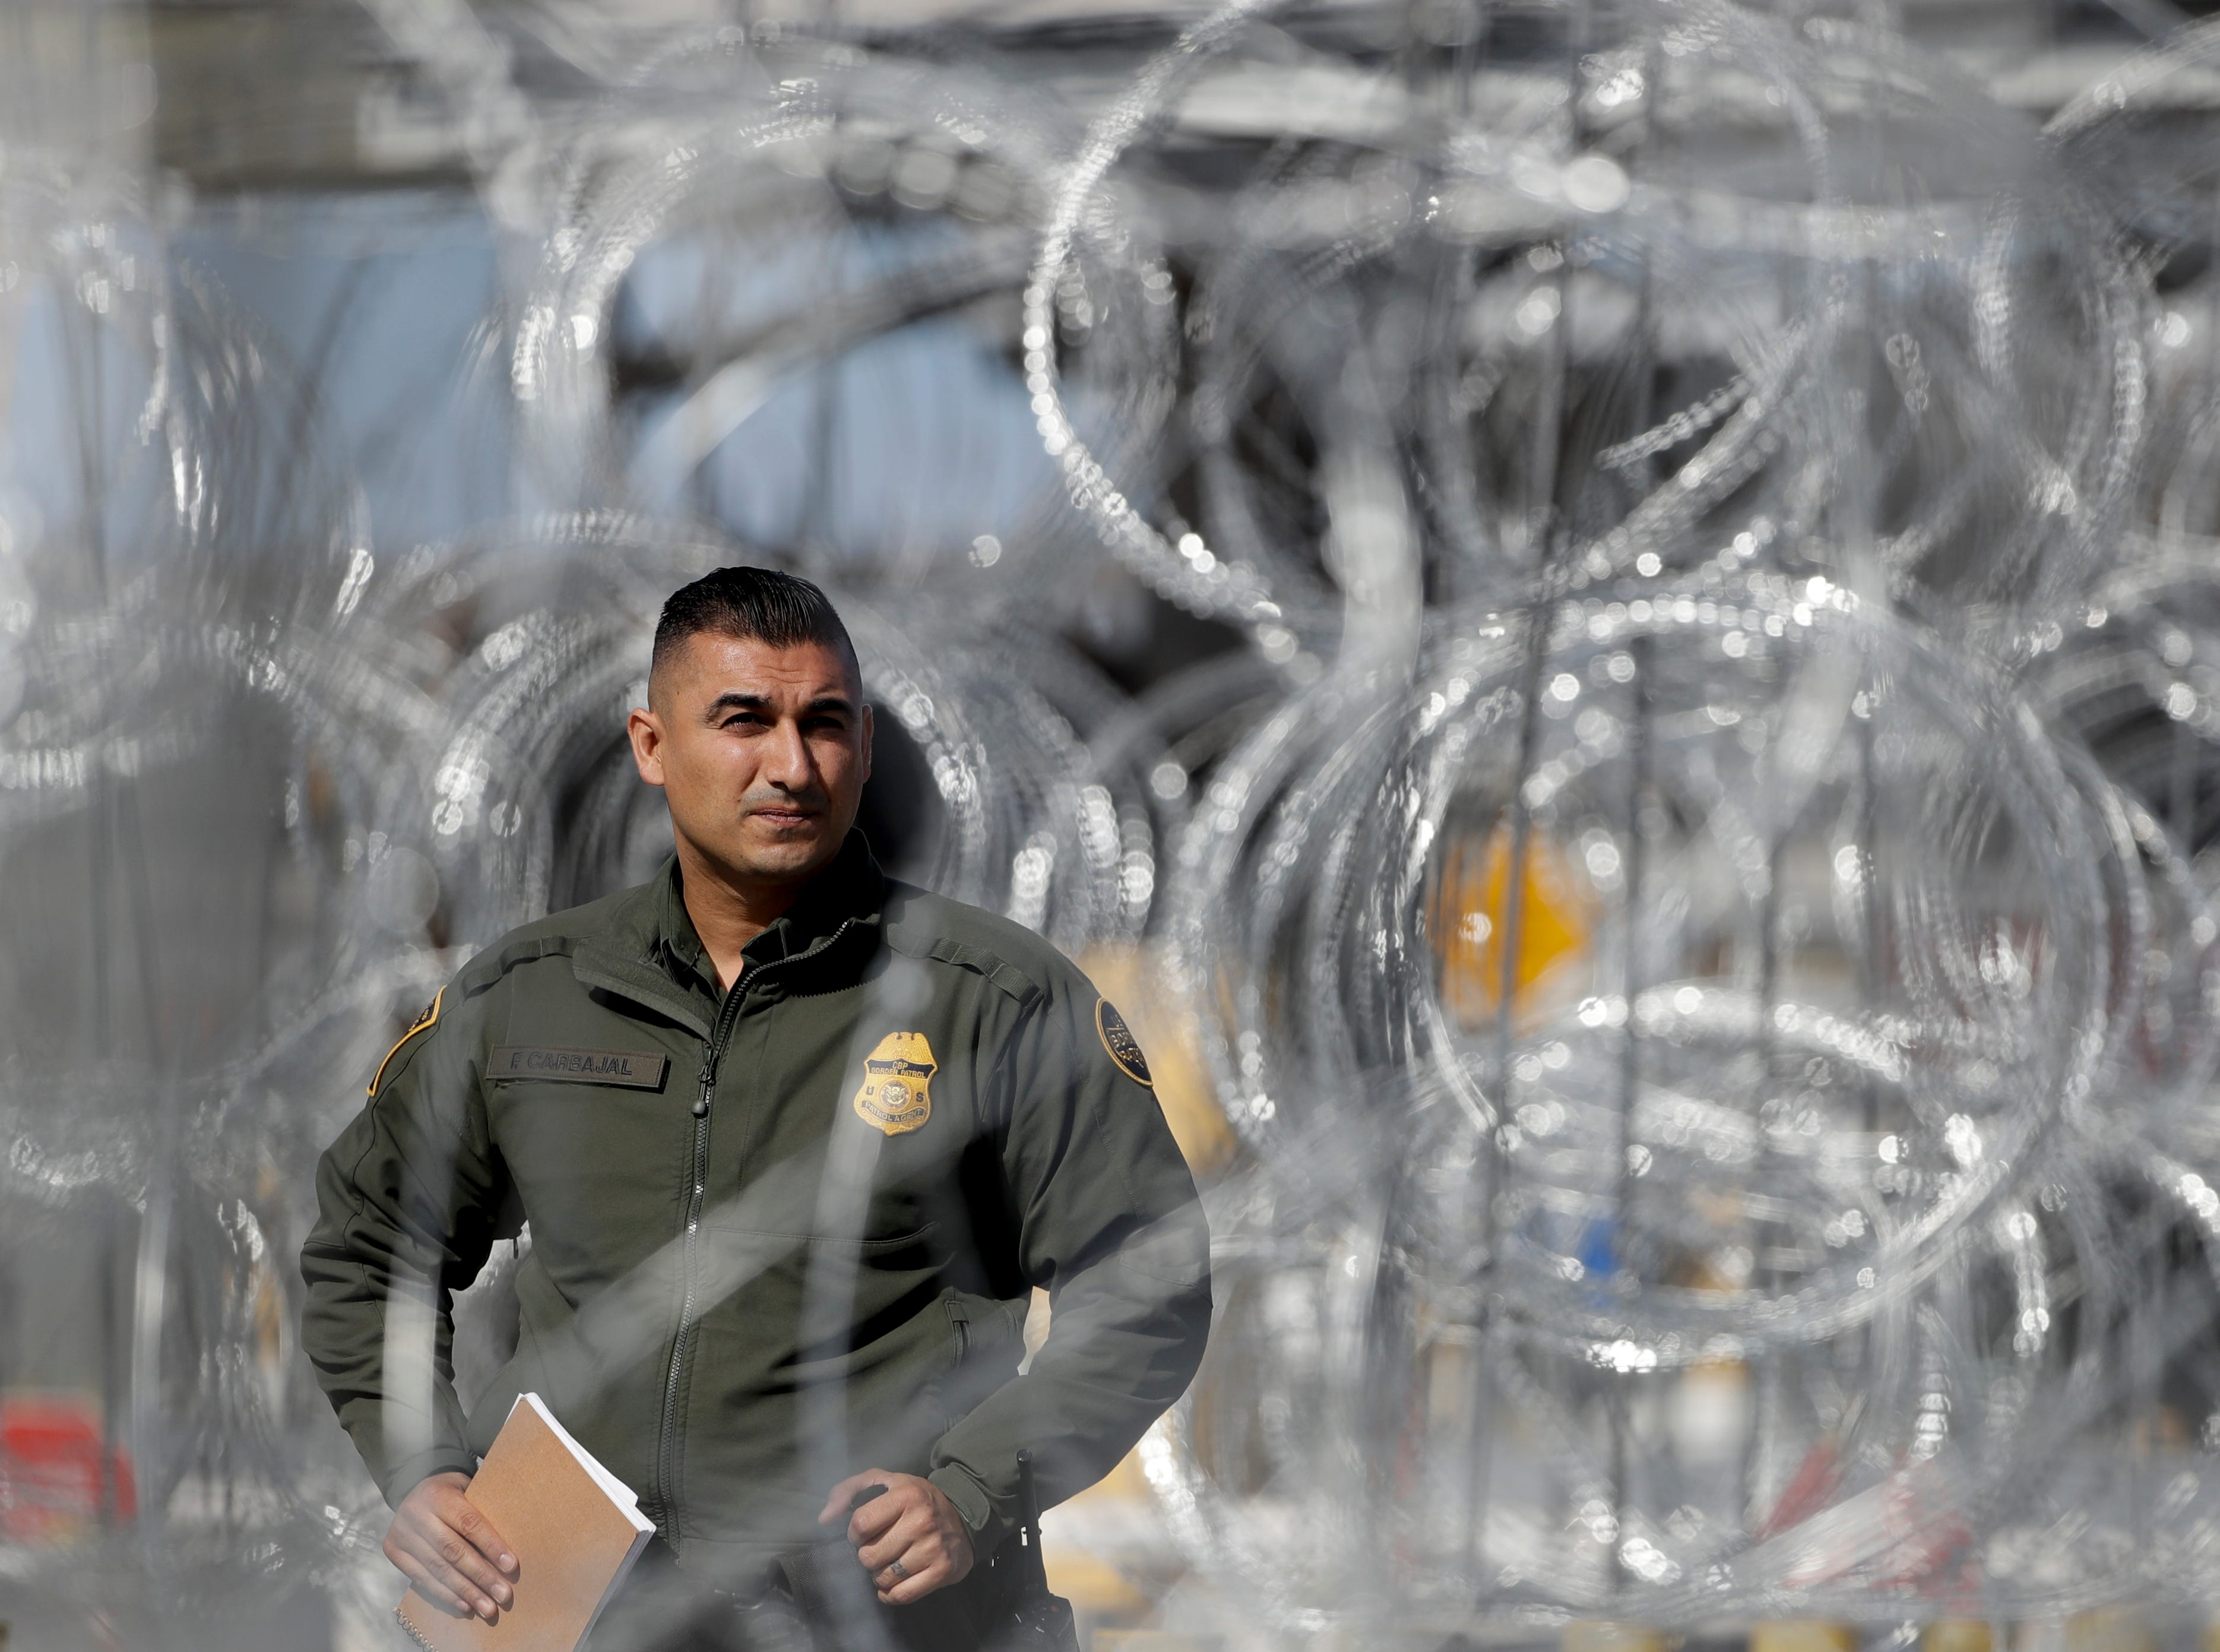 A U.S. Border Patrol agent looks through concertina wire during a tour of the San Ysidro port of entry Friday, Nov. 16, 2018, in San Diego.